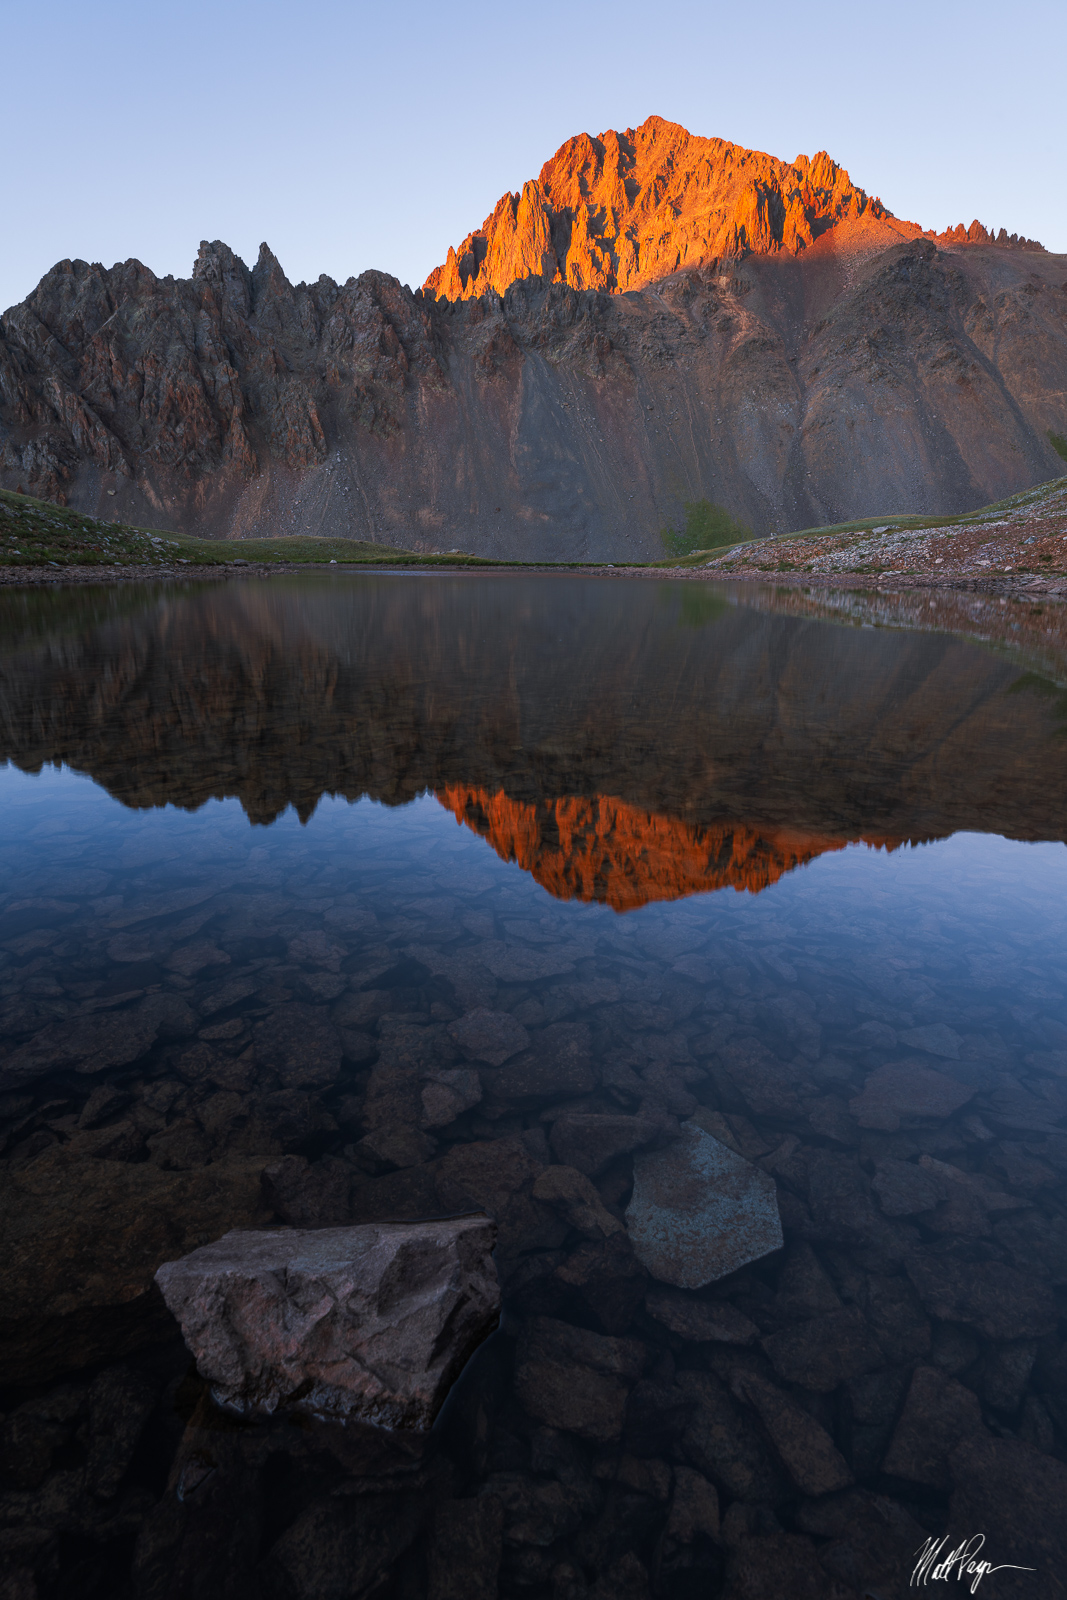 Mount Sneffels, San Juan Mountains, Colorado, 14er, Ouray, Yankee Boy Basin, Blue Lakes, reflection, sunset, lake, Landscape Photography, photo